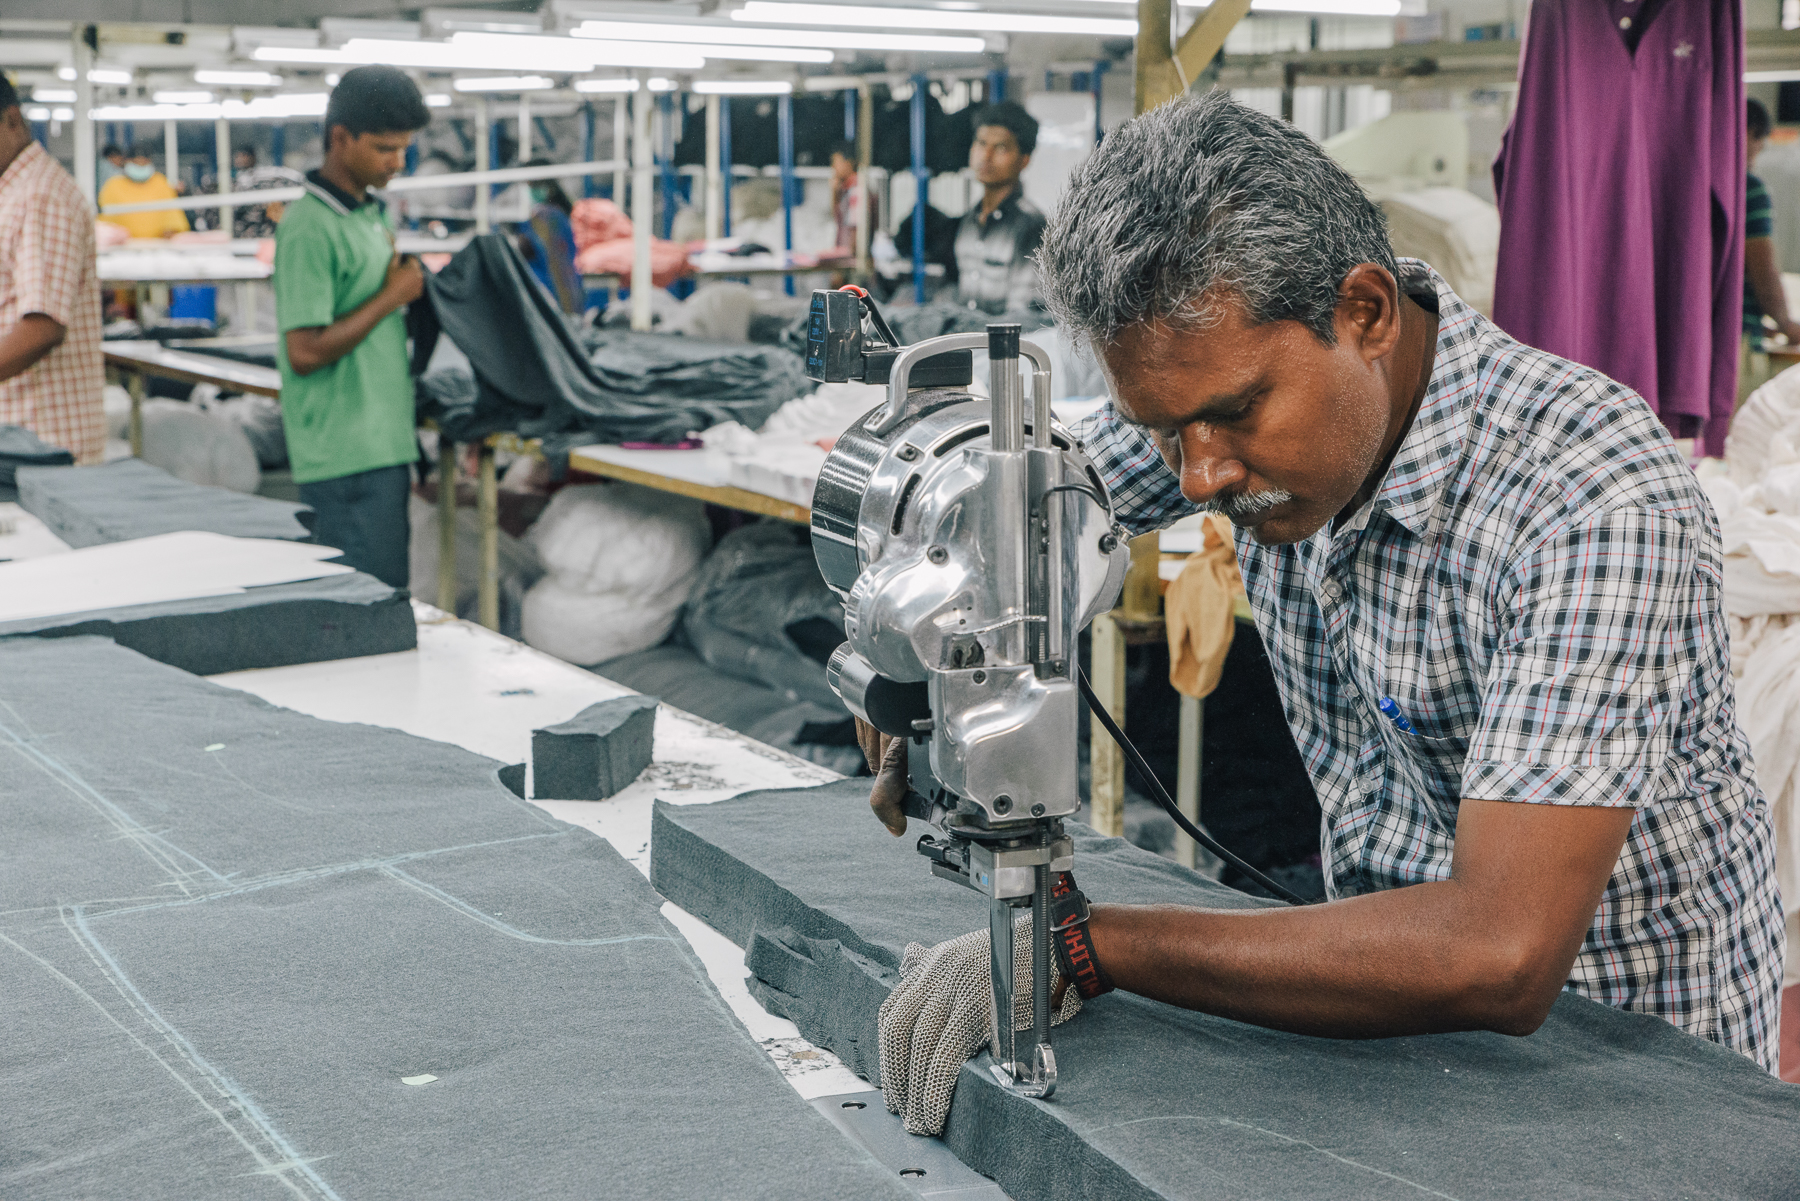 Pact  clothing is made it Fair Trade Certified Factories which provides better wages and working conditions for employees.